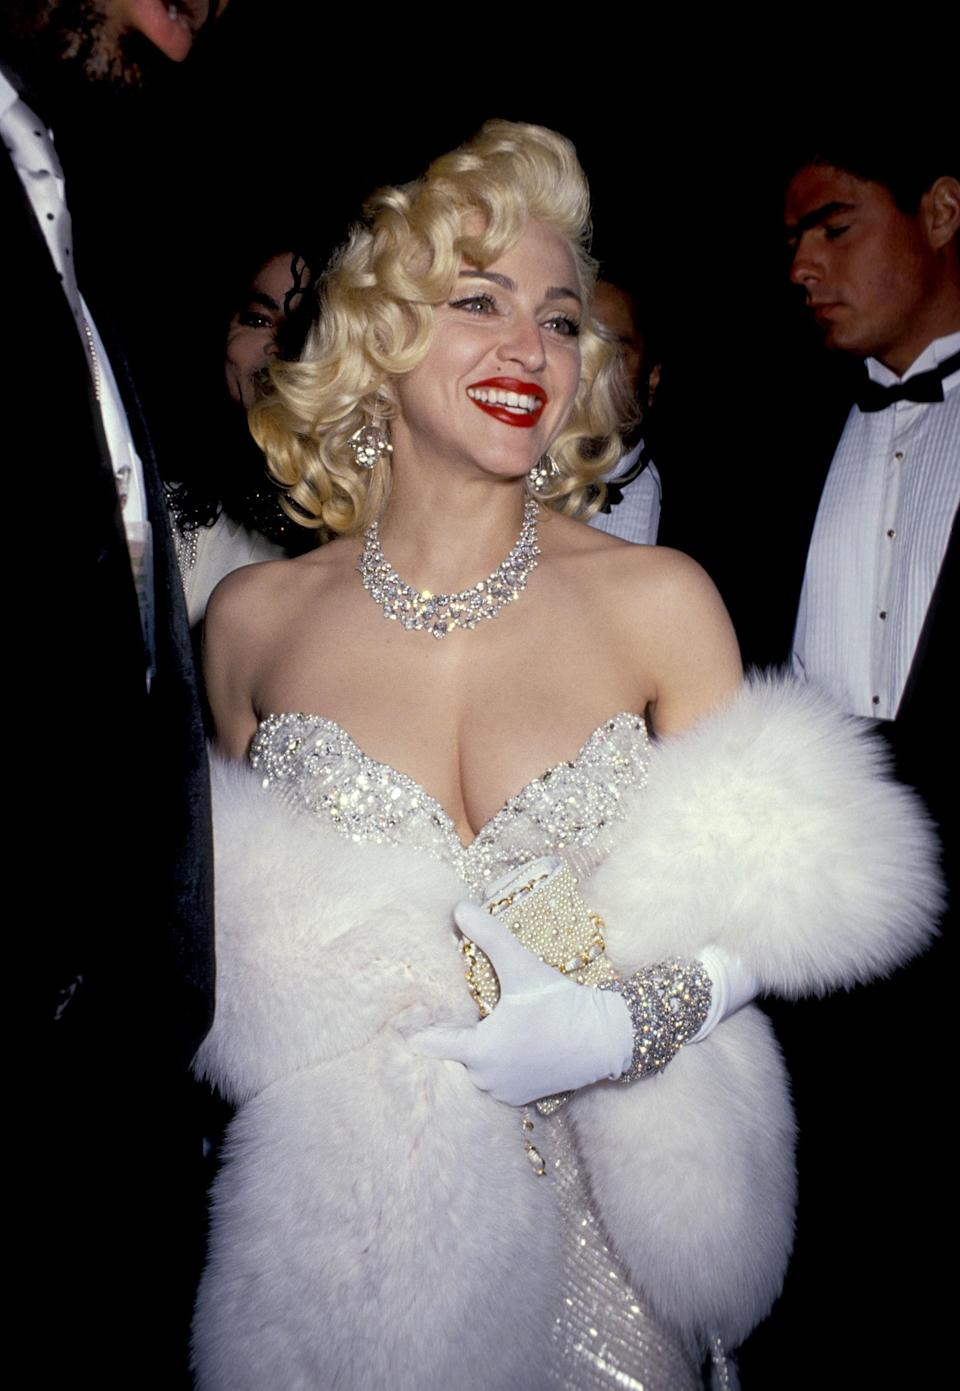 """Madonna was in Marilyn Monroe mode when she made a special appearance at the 1991 Oscars with Michael Jackson. Pop's king and queen both accessorized with massive diamonds—his brooch as bolero moment is iconic in itself—but Madonna's outsize bling proved record-breaking. With more than $20 million worth of Harry Winston jewels on her person, she brought the """"Diamonds Are a Girl's Best Friend"""" theme to life."""